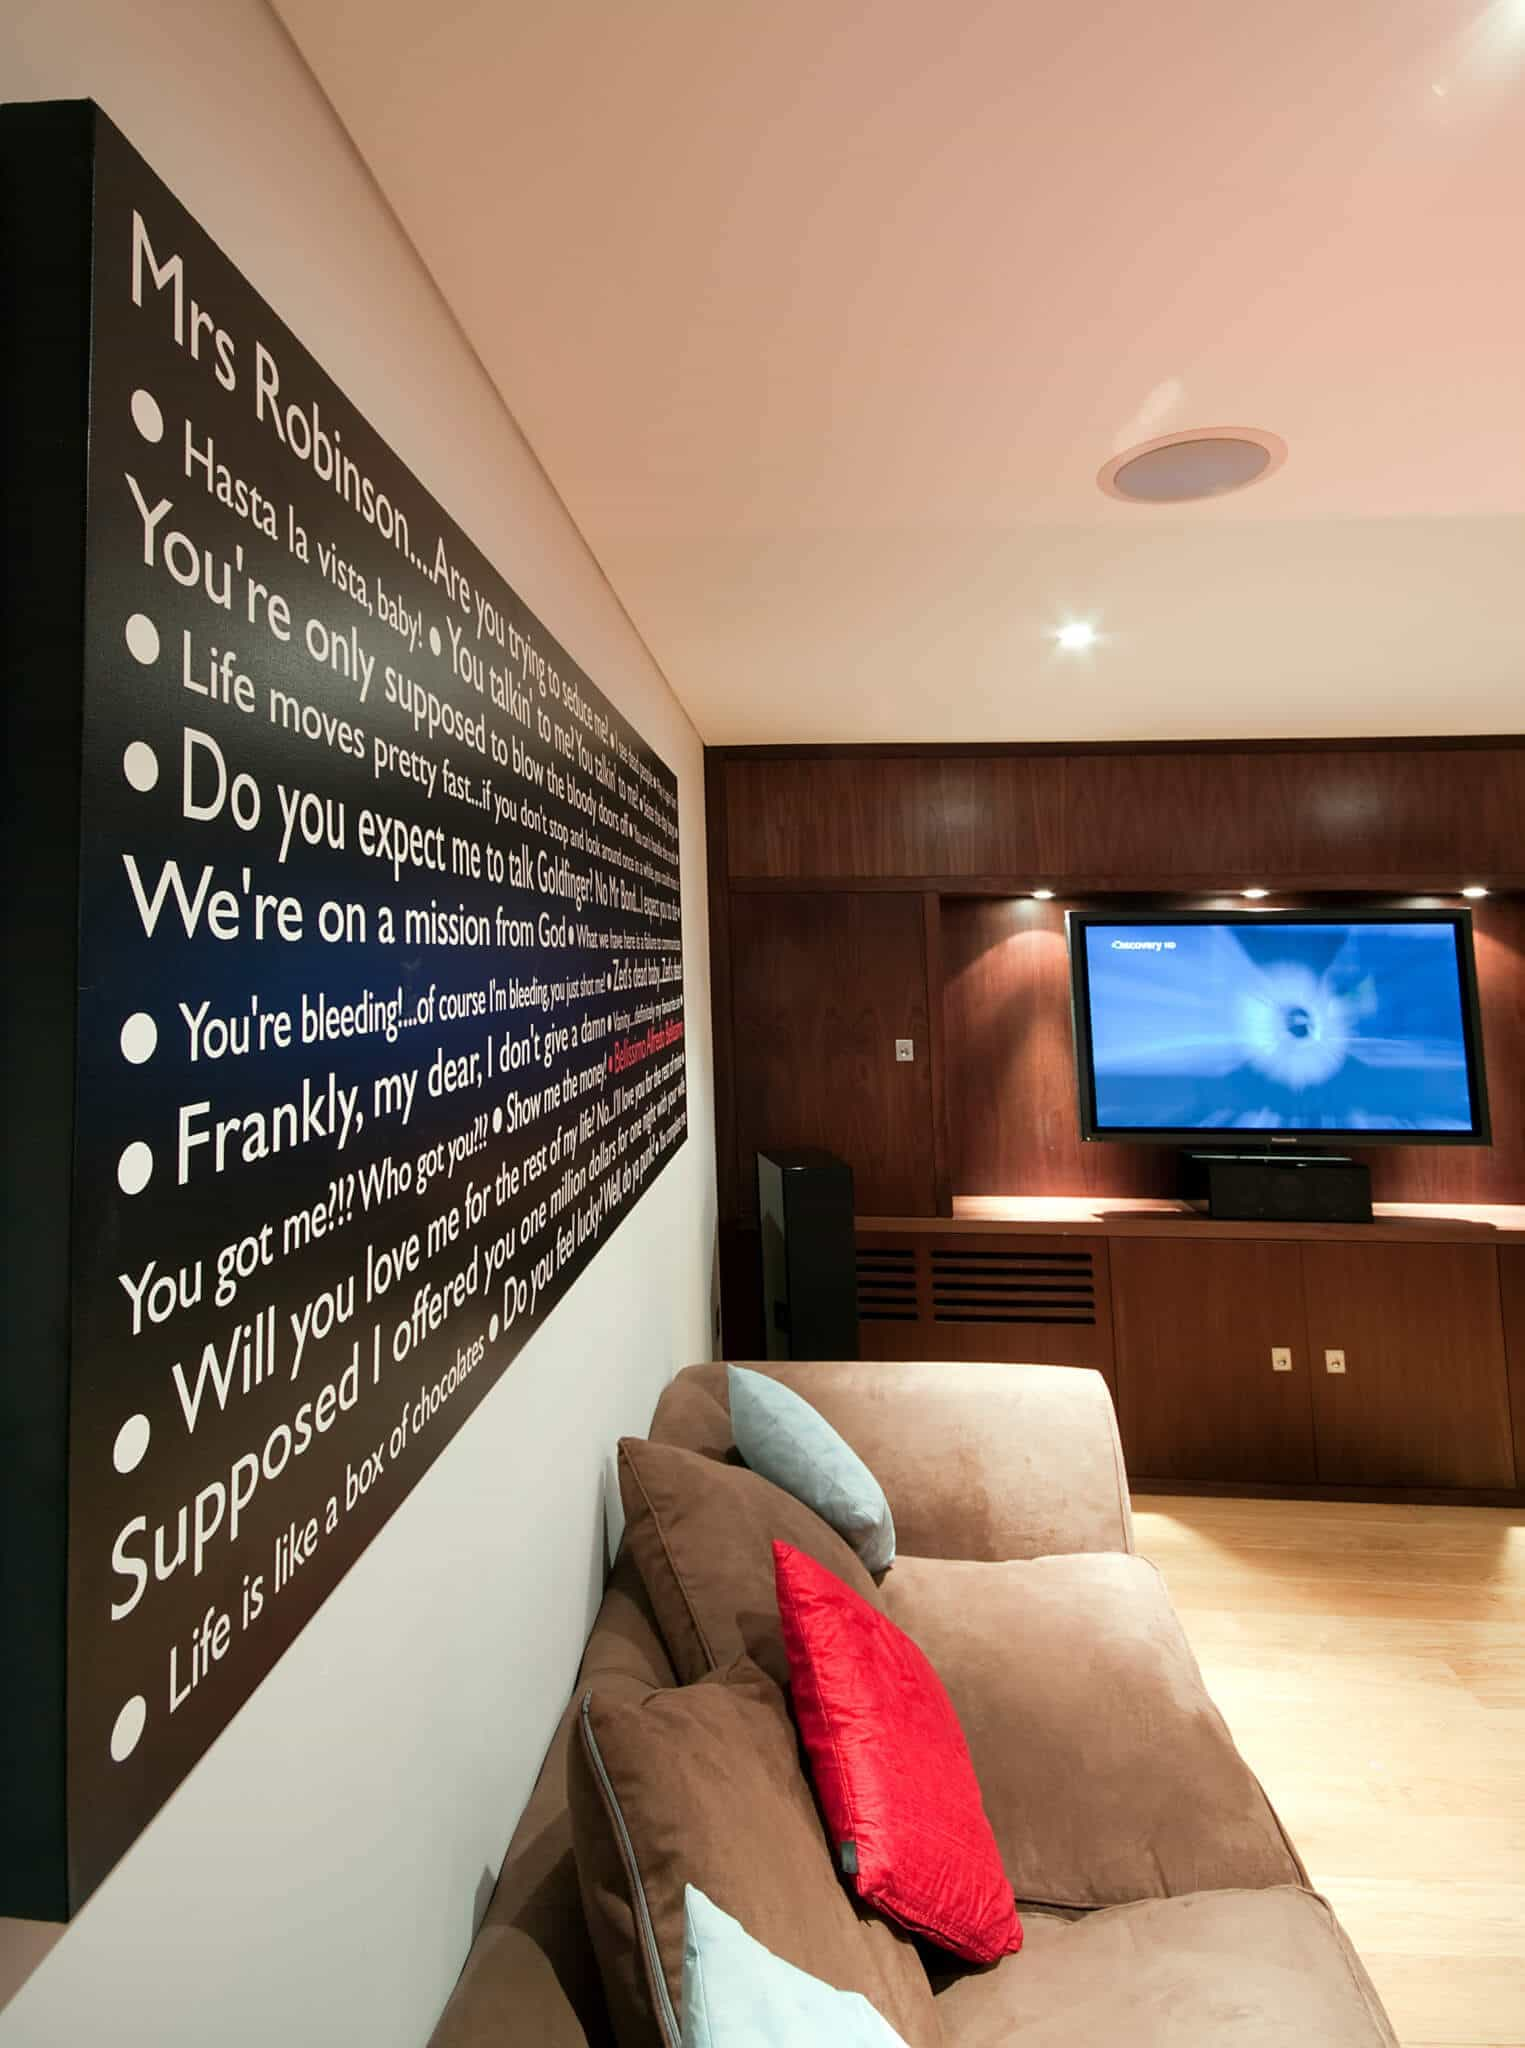 Basement Home Cinema in Baker St